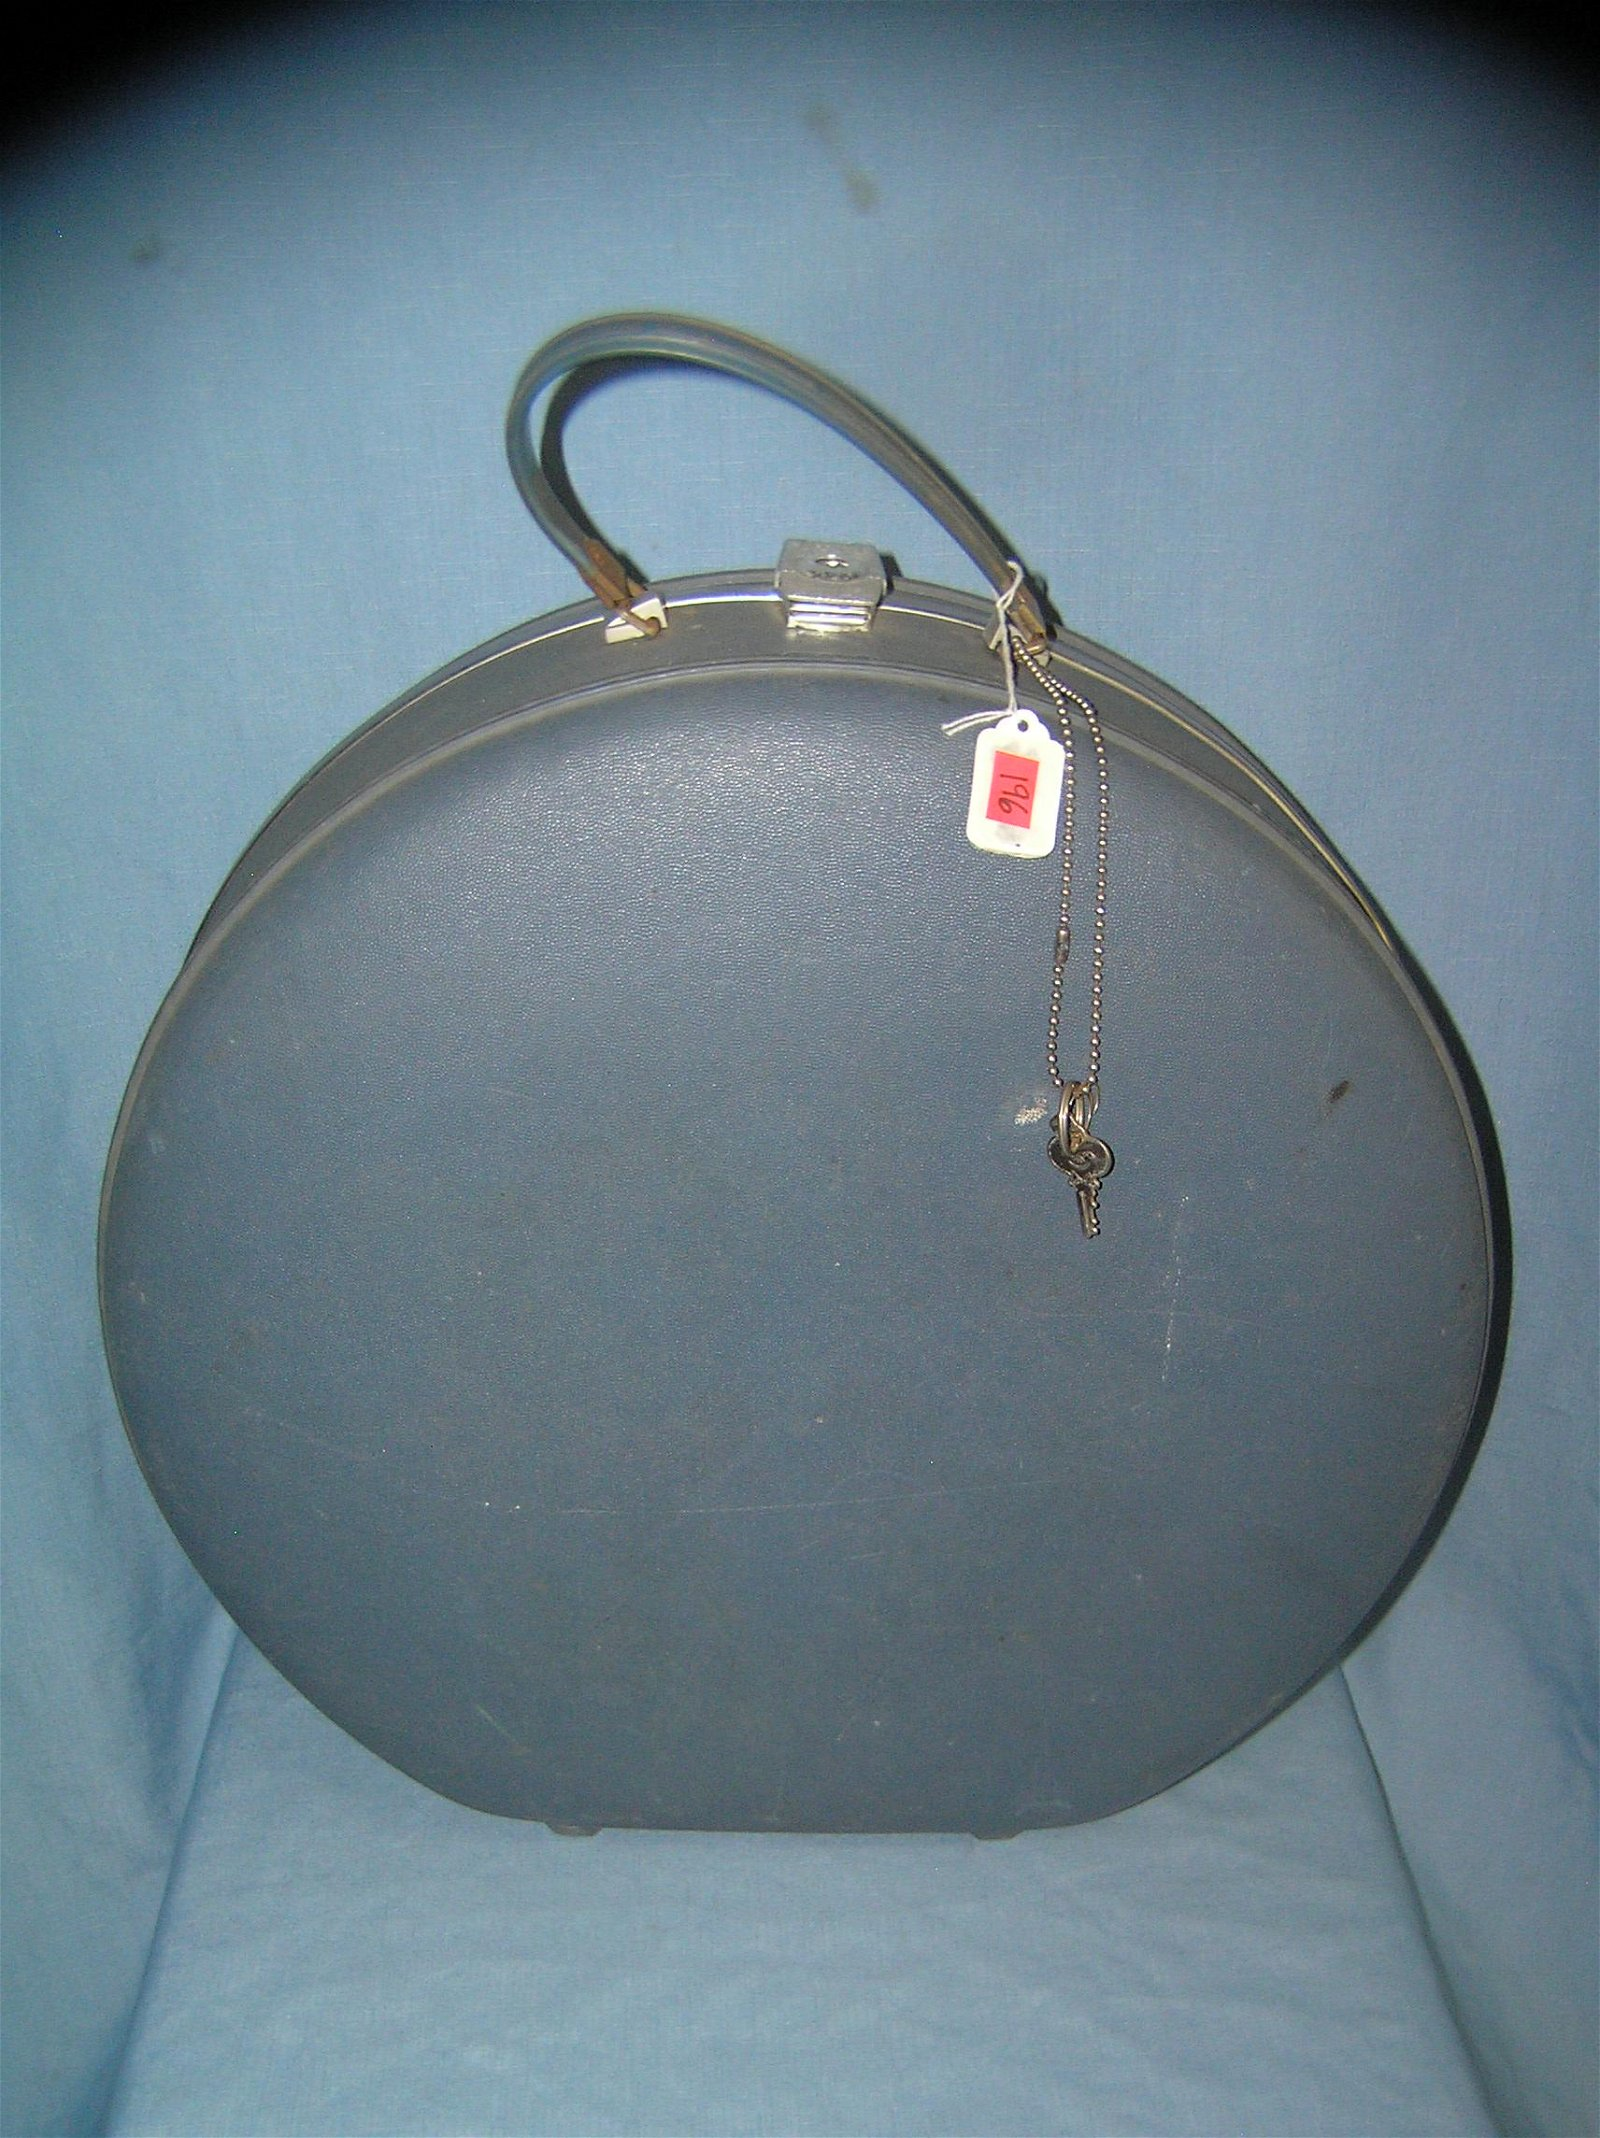 Vintage American Tourister hard case carry on